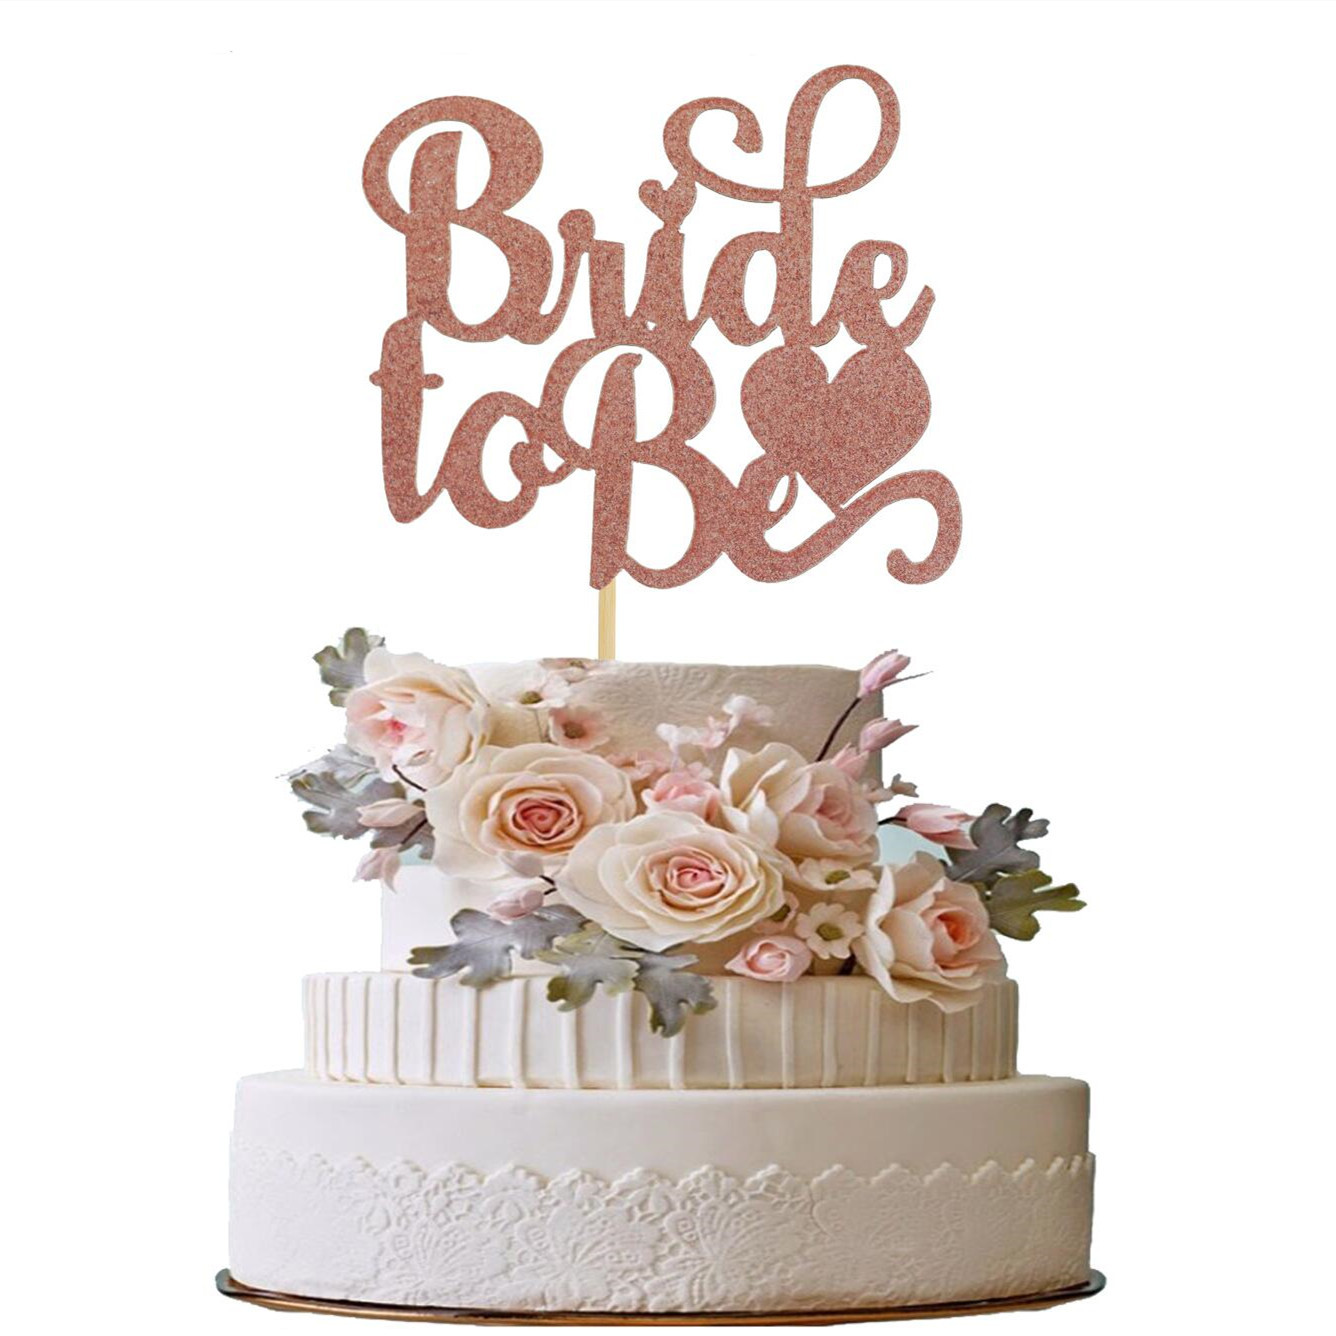 24 Champagne Cup Cake Topper Wedding Decoration